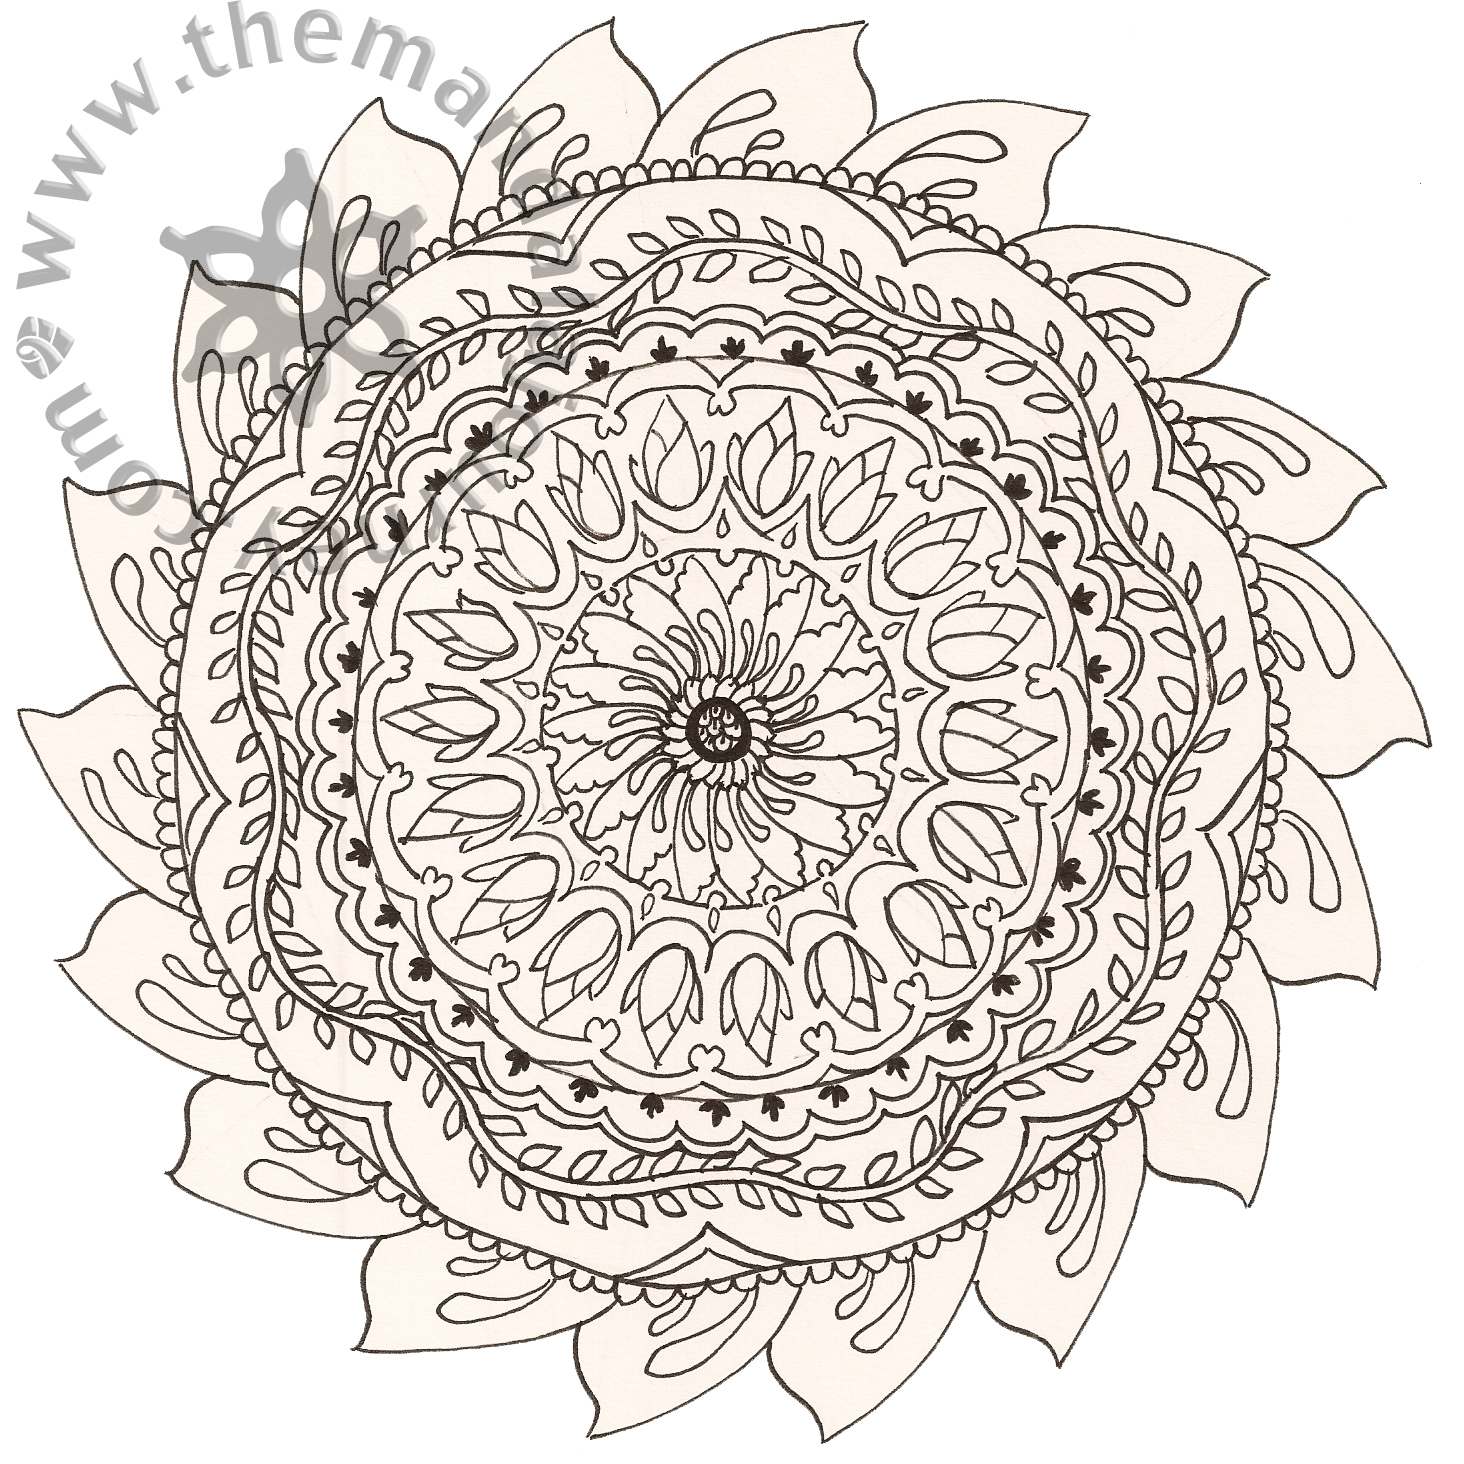 here are some line mandalas that i worked up i d eventually like to